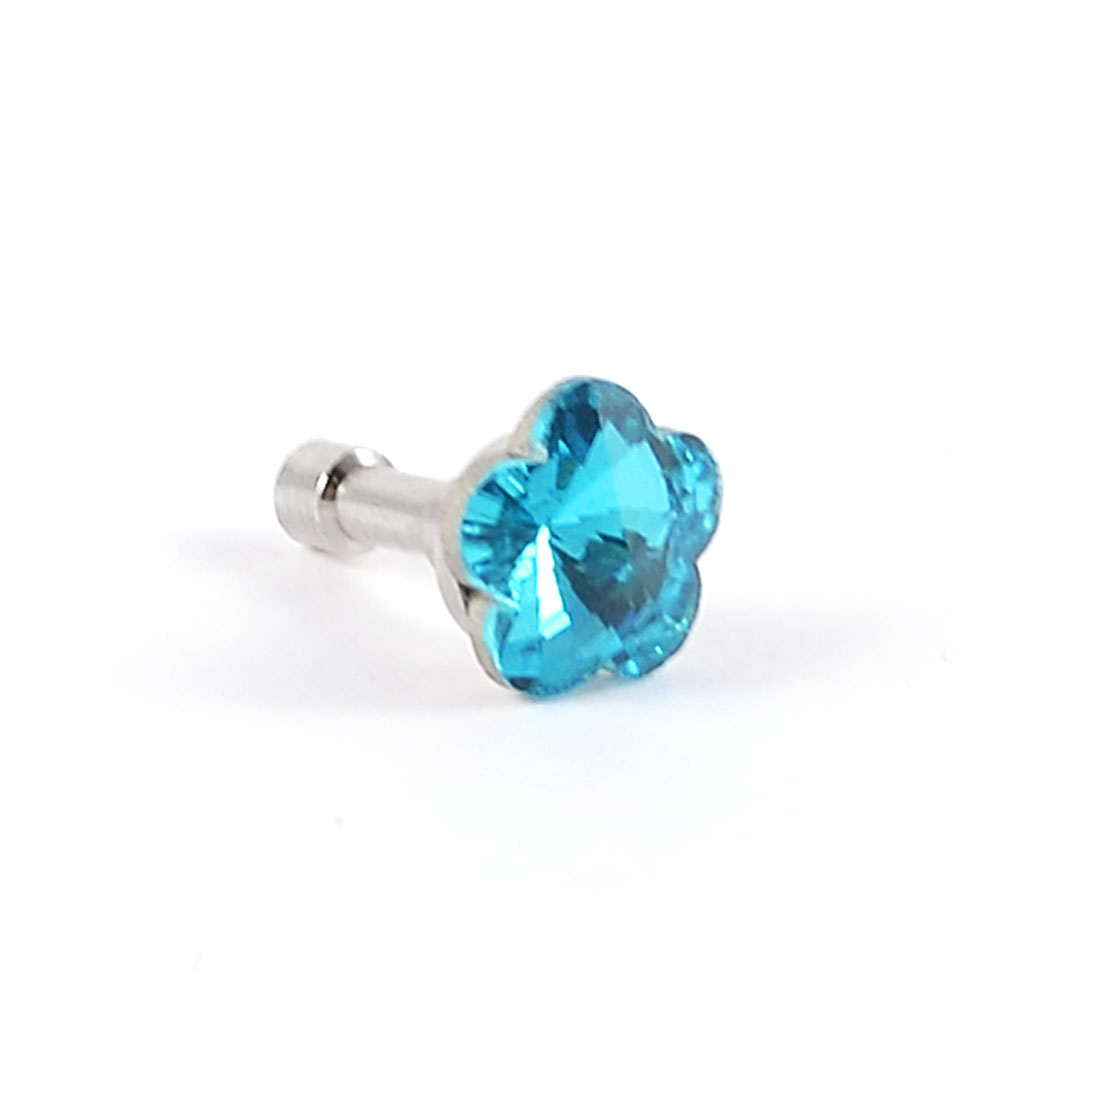 Glitter Teal Blue Faceted Flower Crystal 3.5mm Ear Cap Dust Plug for Cell Phone